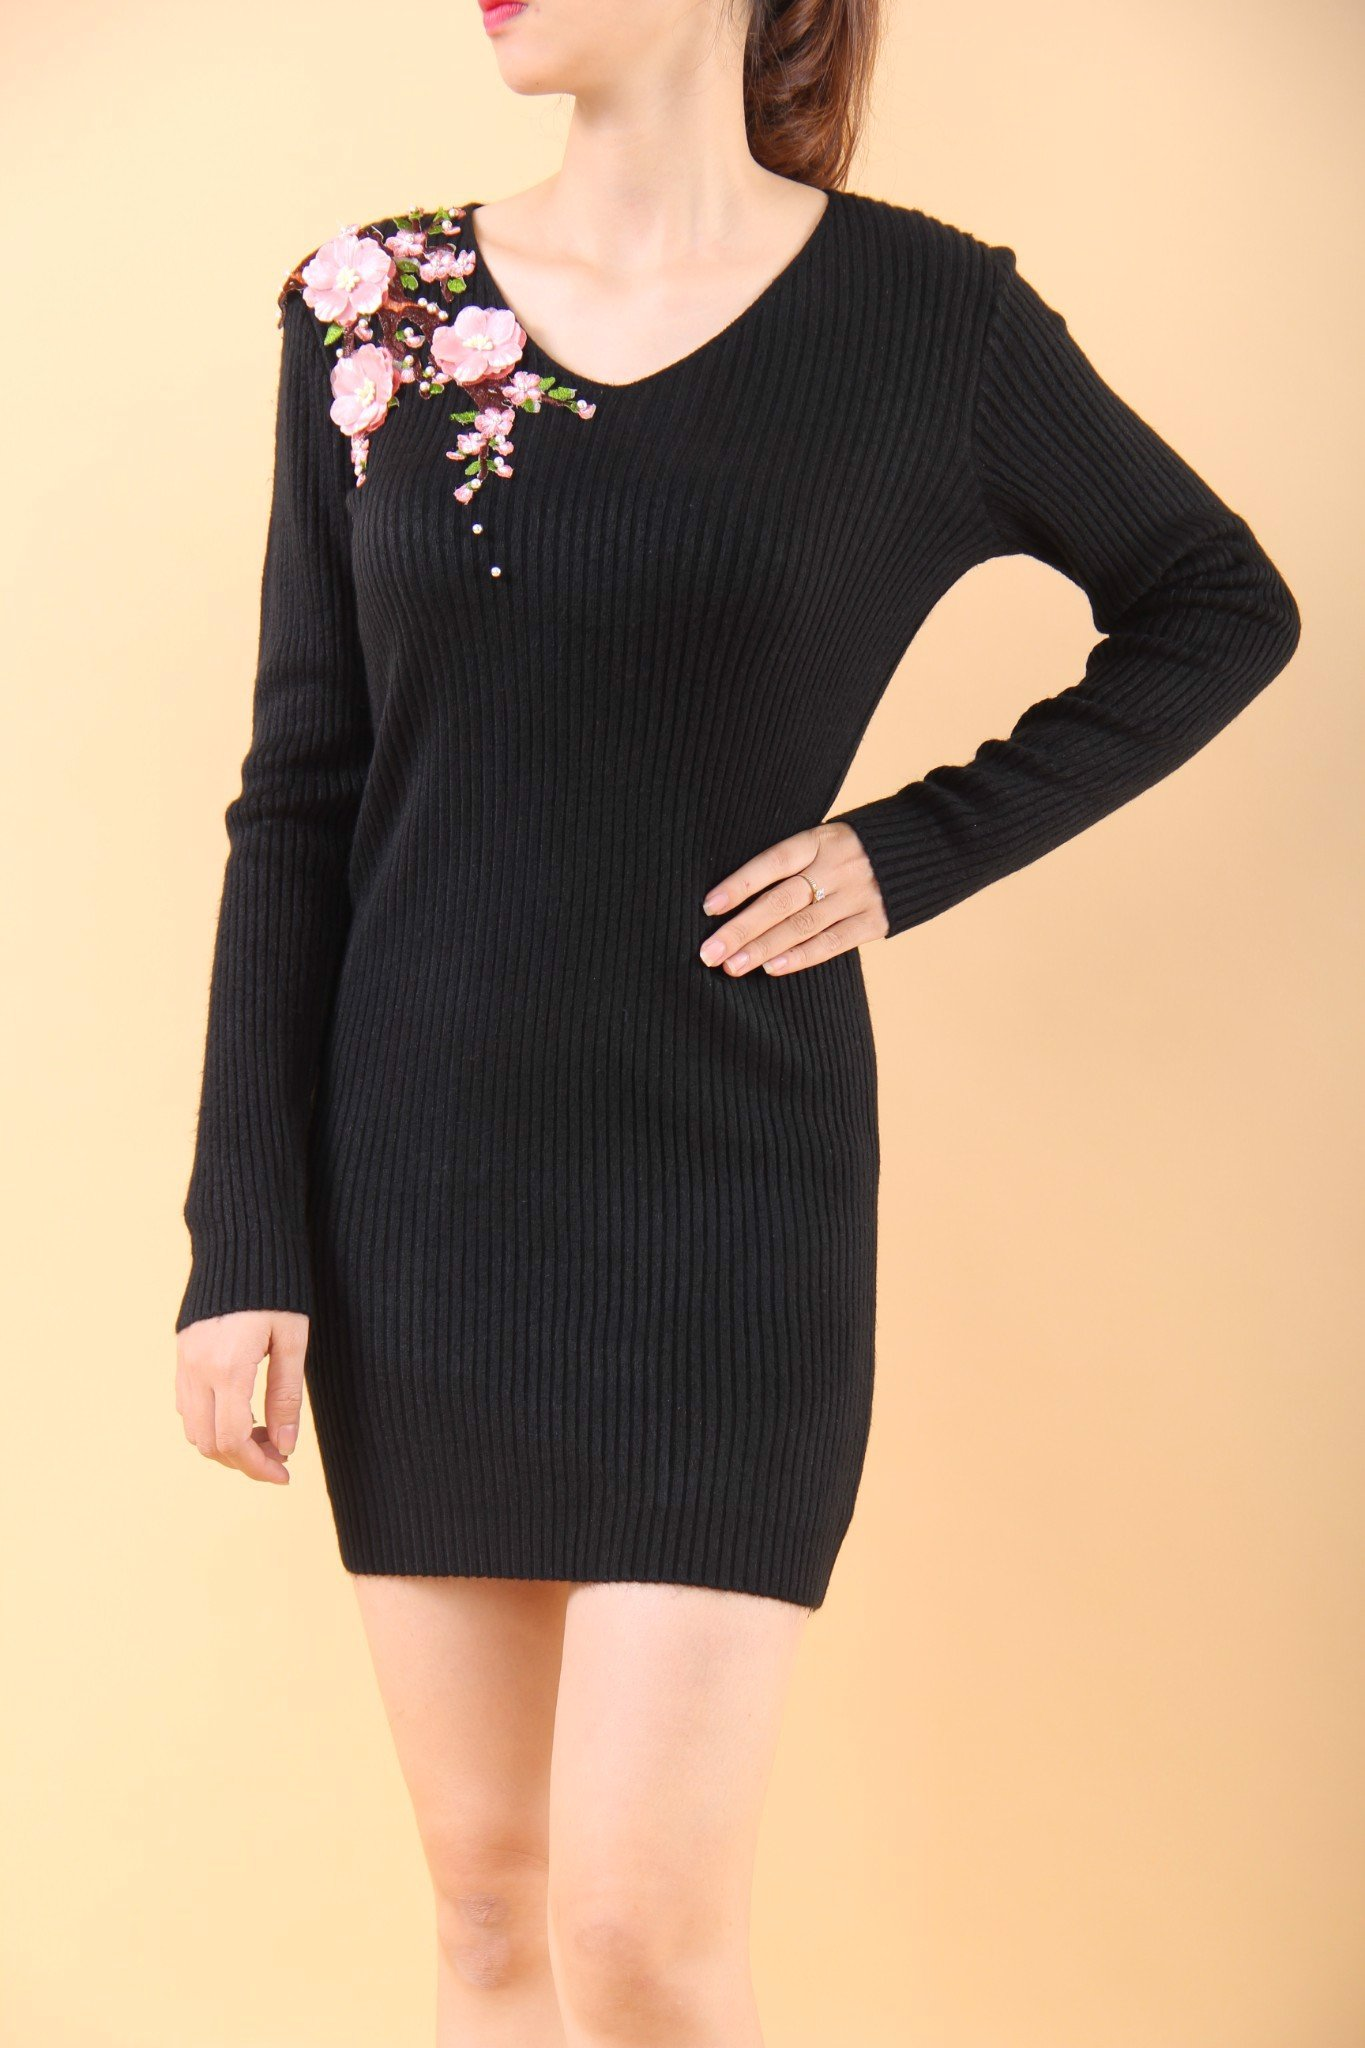 Peach blossom black mini dress